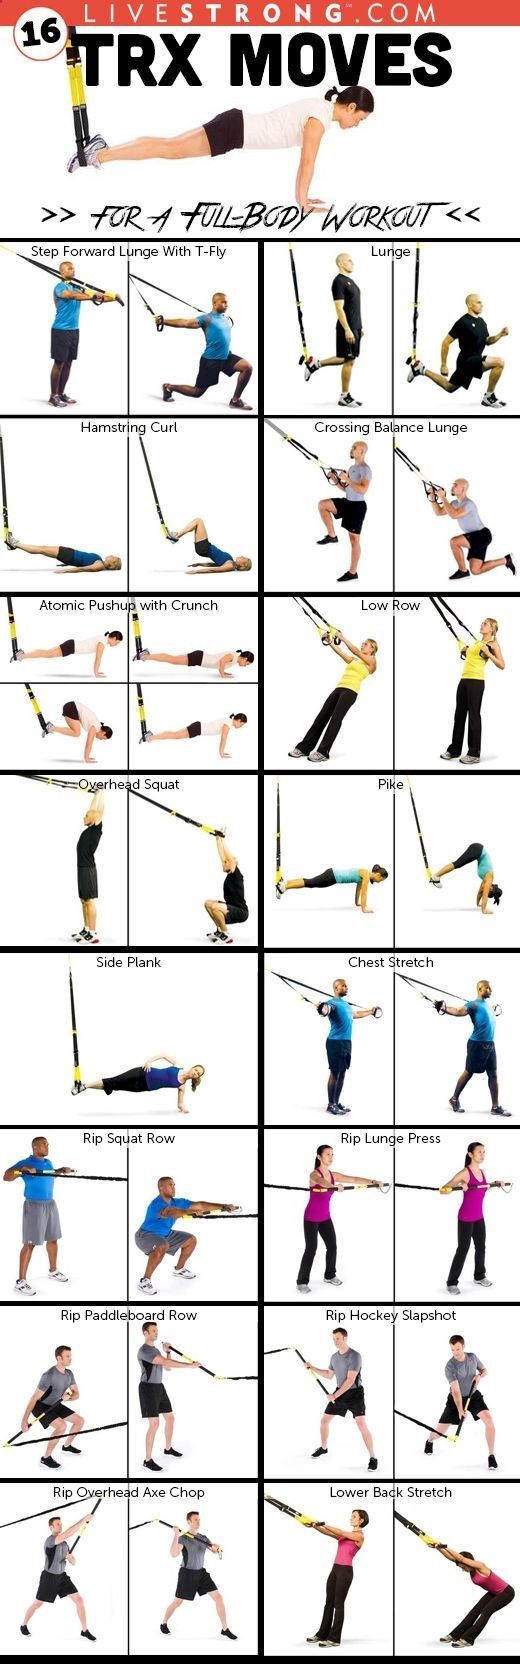 "Weight Loss E-Factor Diet - 16 TRX Moves for a Full-Body Workout TRX Training www.livestrong.co... For starters, the E Factor Diet is an online weight-loss program. The ingredients include ""simple real foods"" found at local grocery stores."